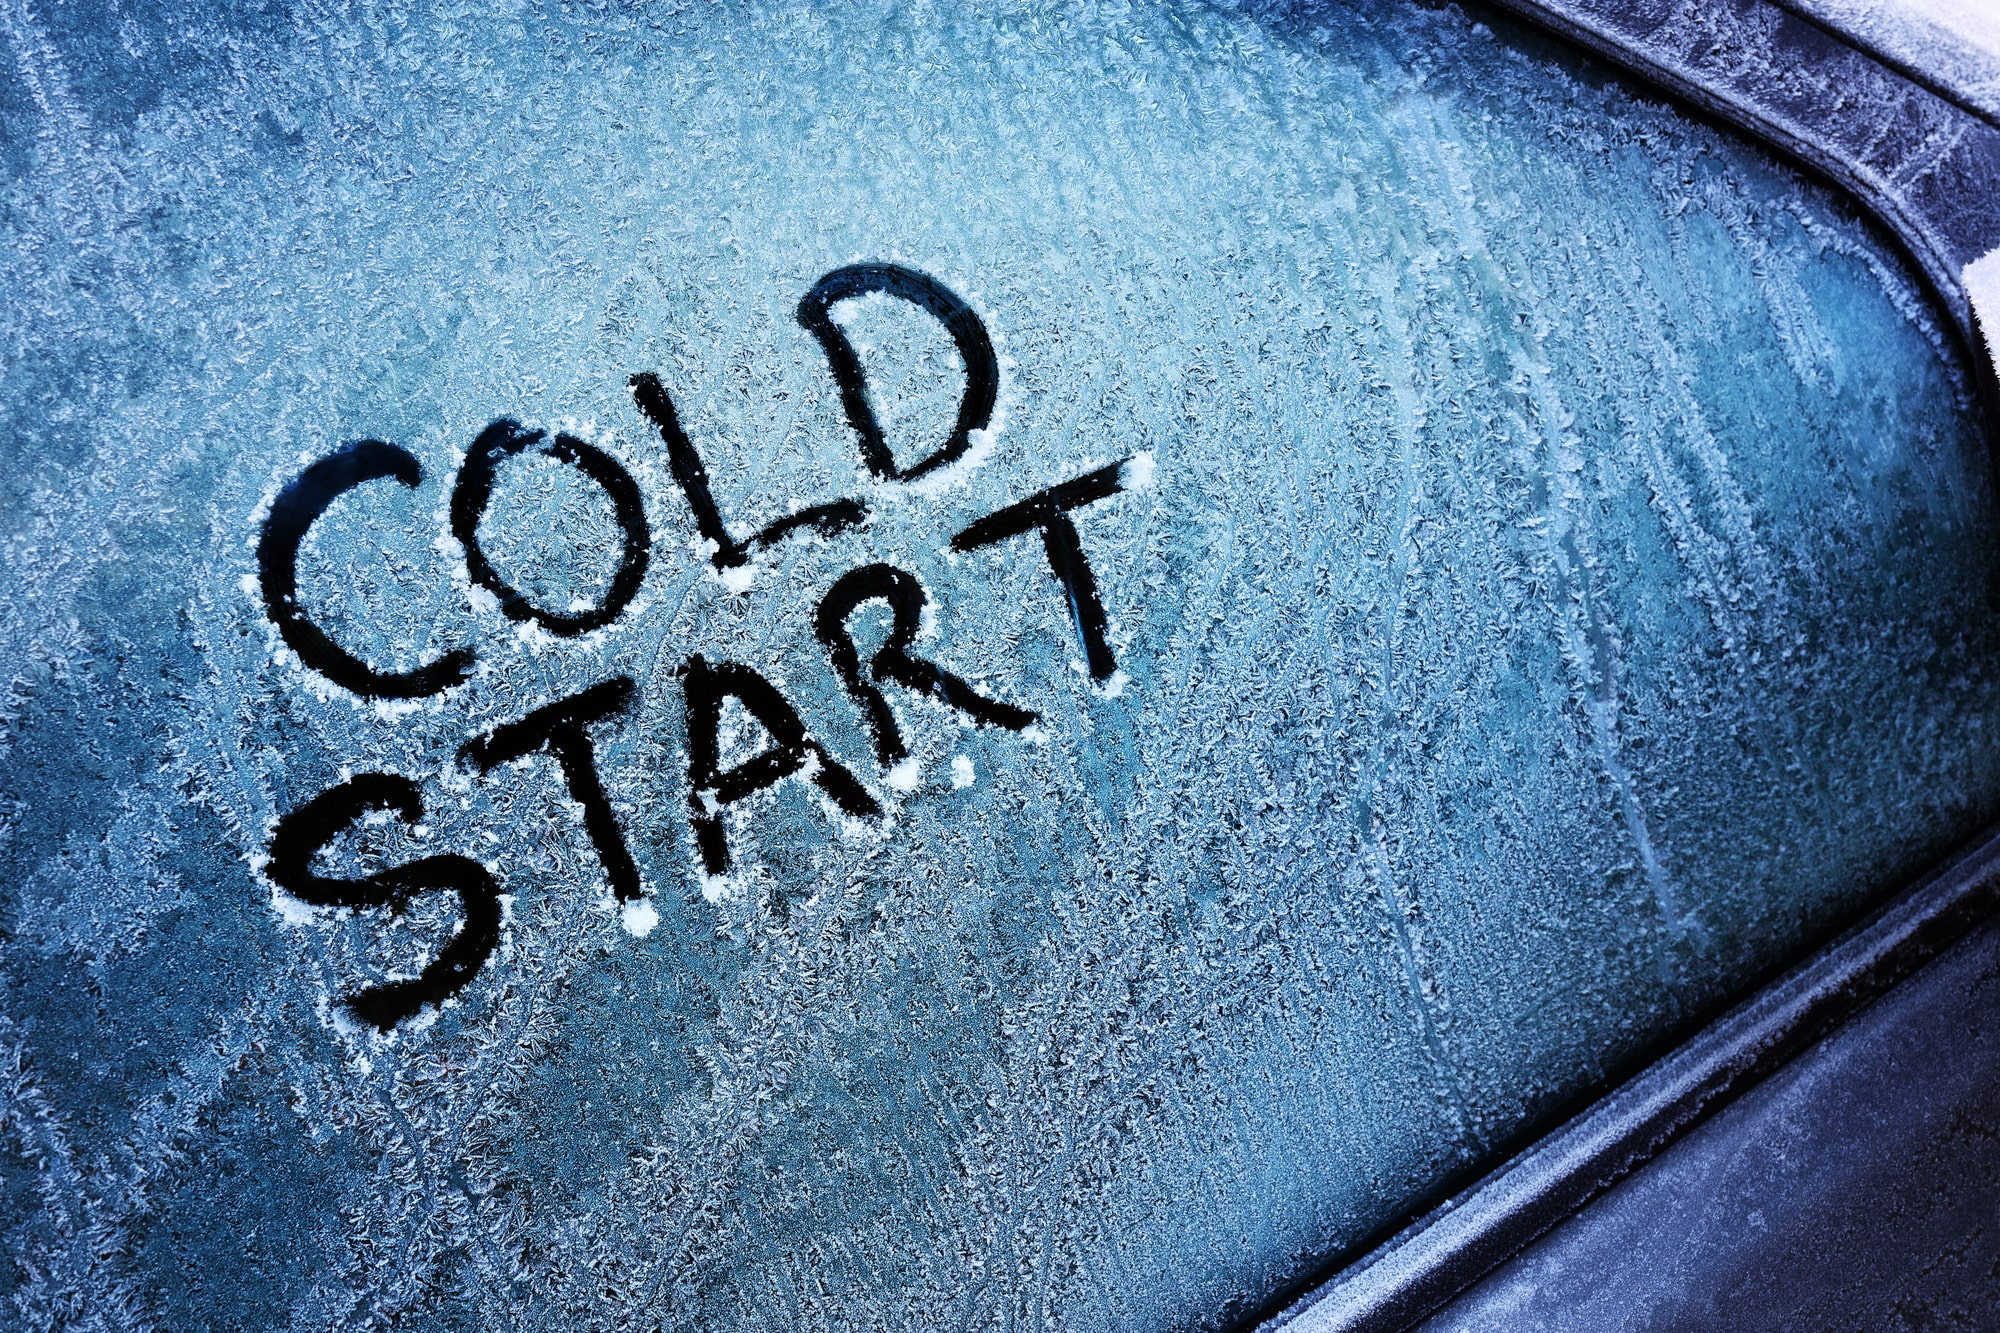 'Cold Start' written on a frosted car window.